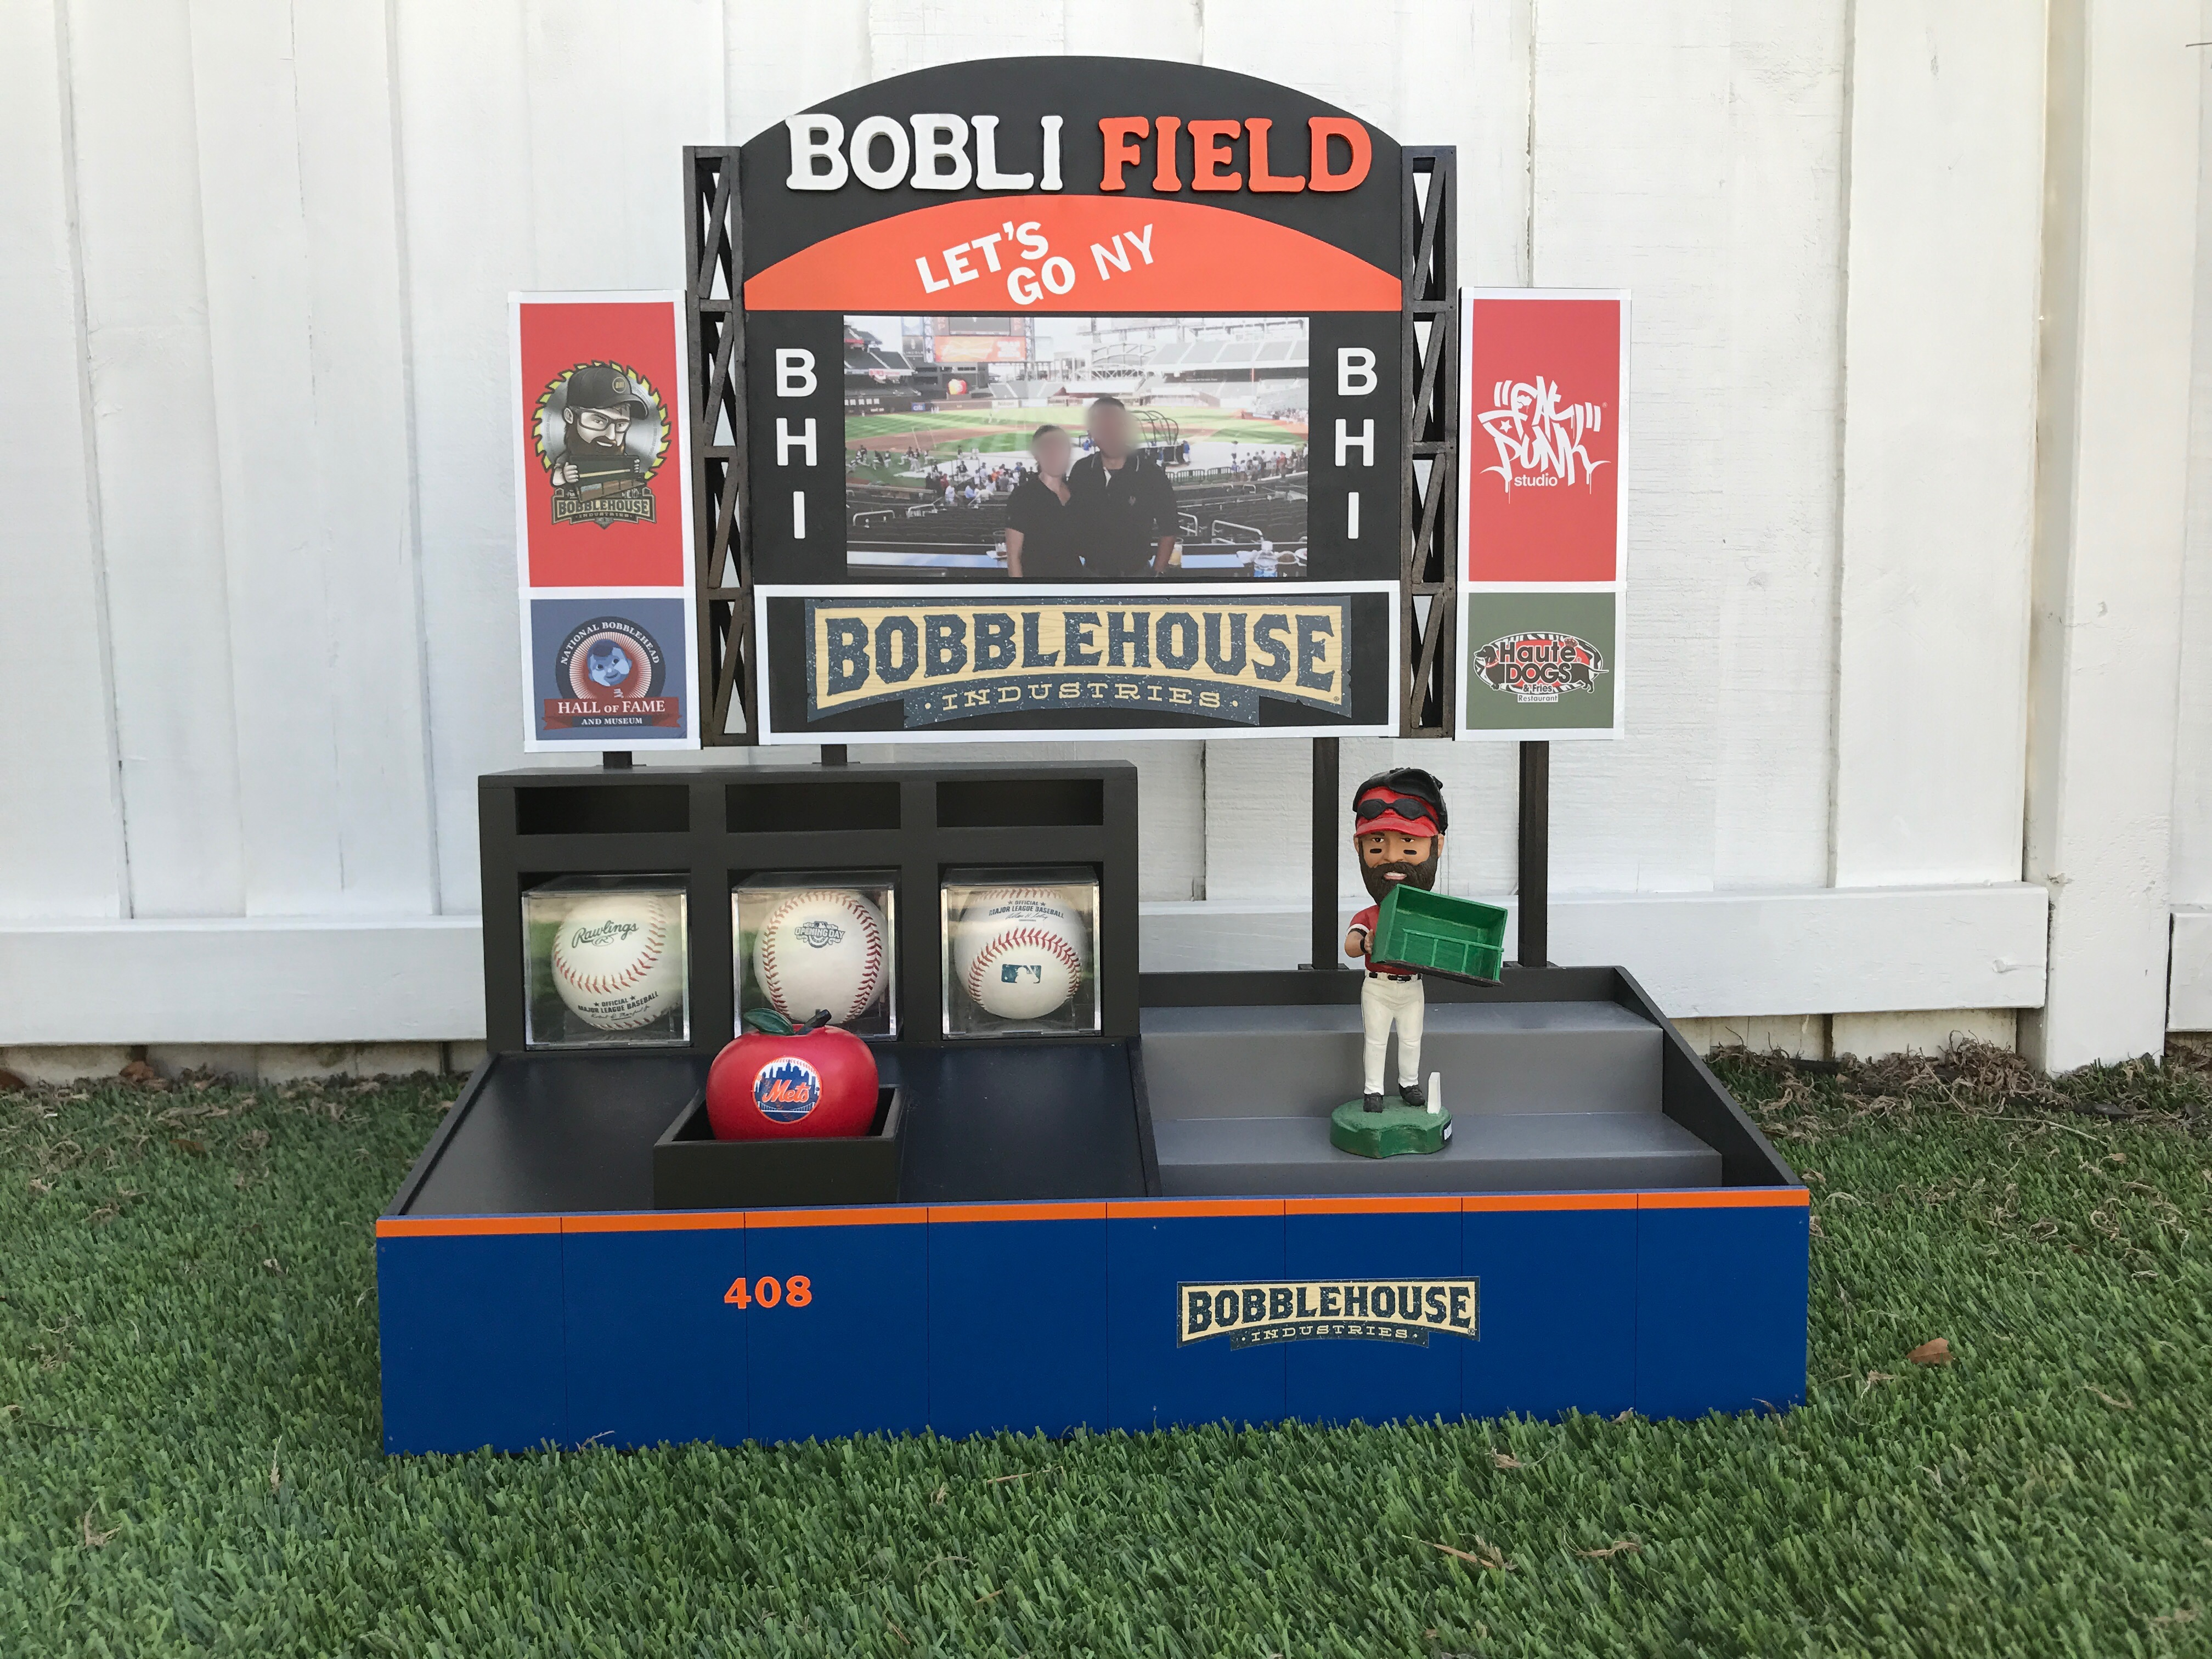 BobliField™ for the homeless bobbleheads in NY